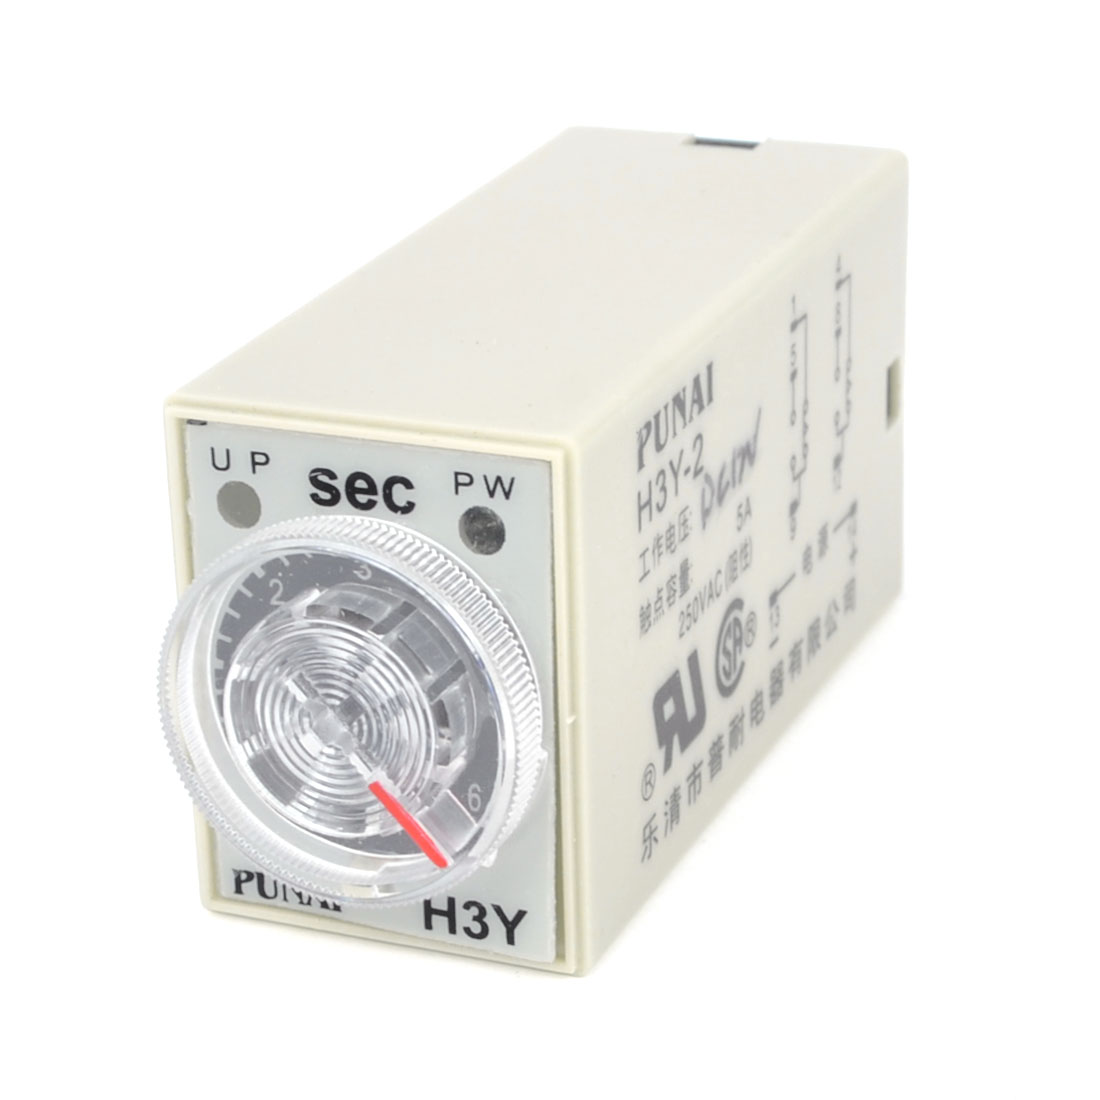 AC 250V 5A 0-60 Seconds Knob Control Electronic Timer Delay Relay H3Y-2